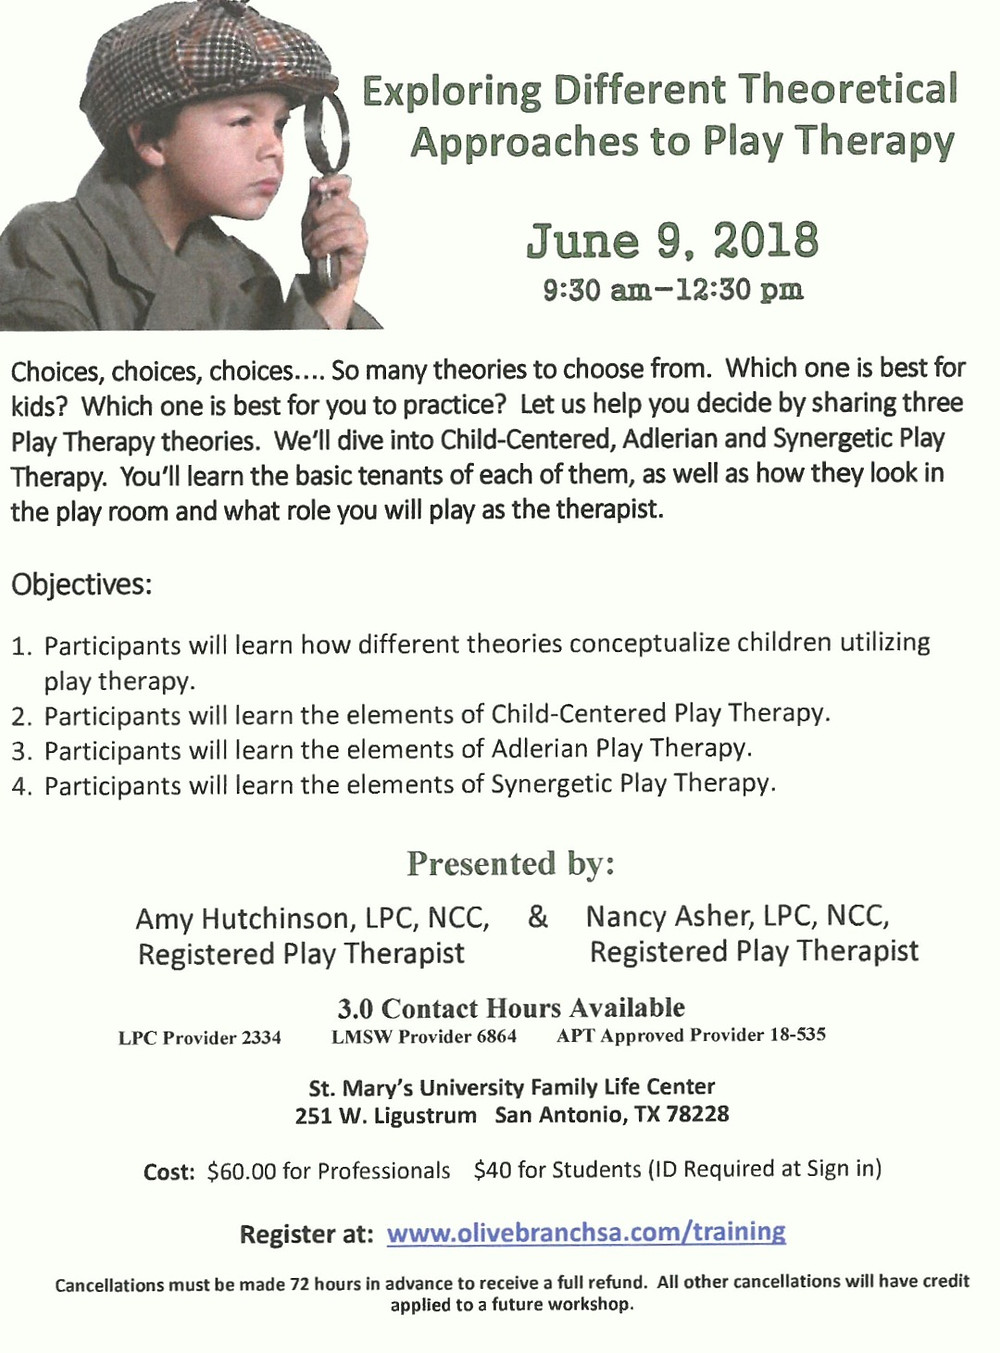 Exploring different theoretical approaches to play therapy